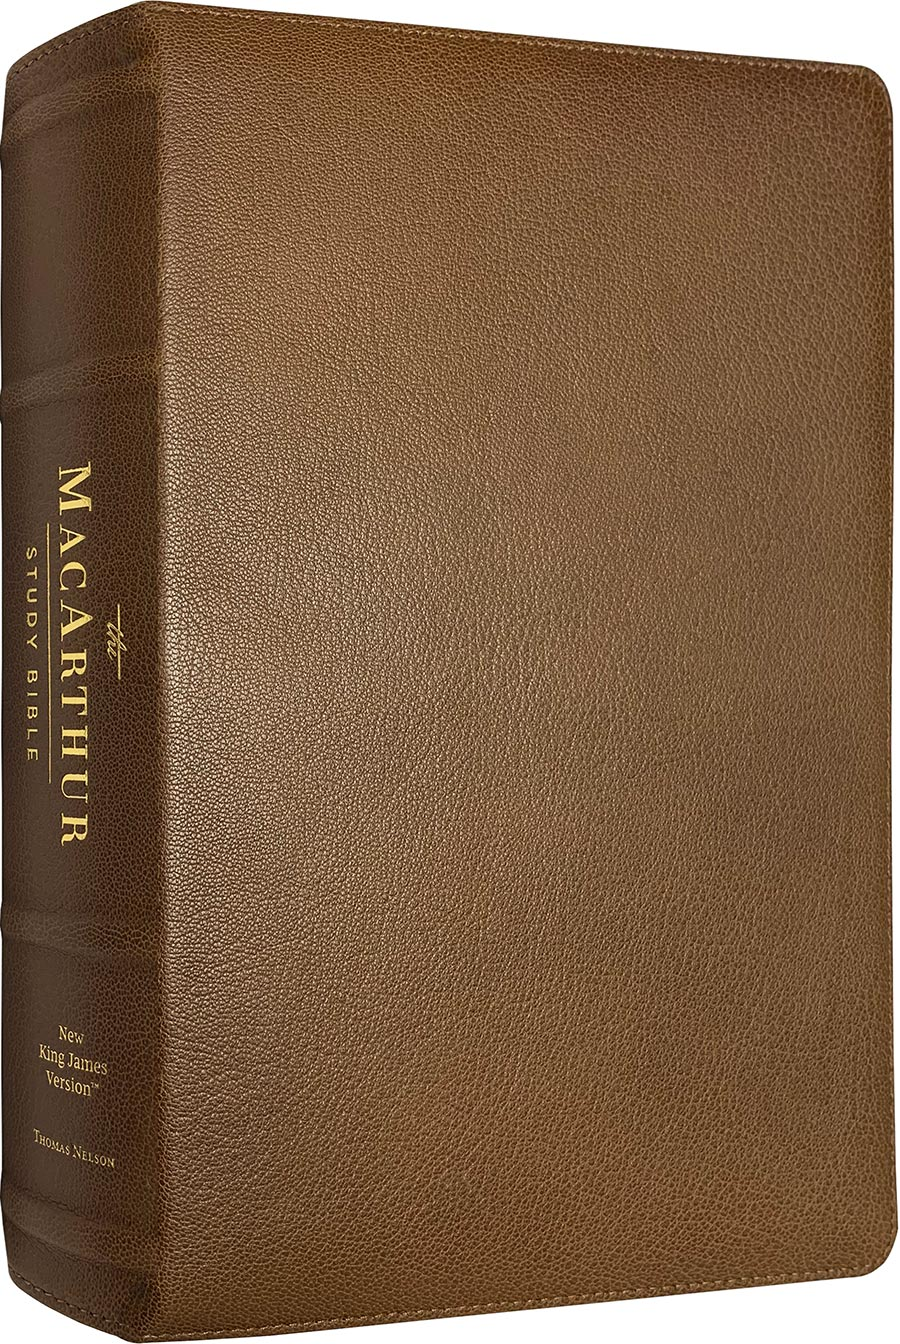 NKJV MacArthur Study Bible (Second Edition) (Brown Premium Leather)